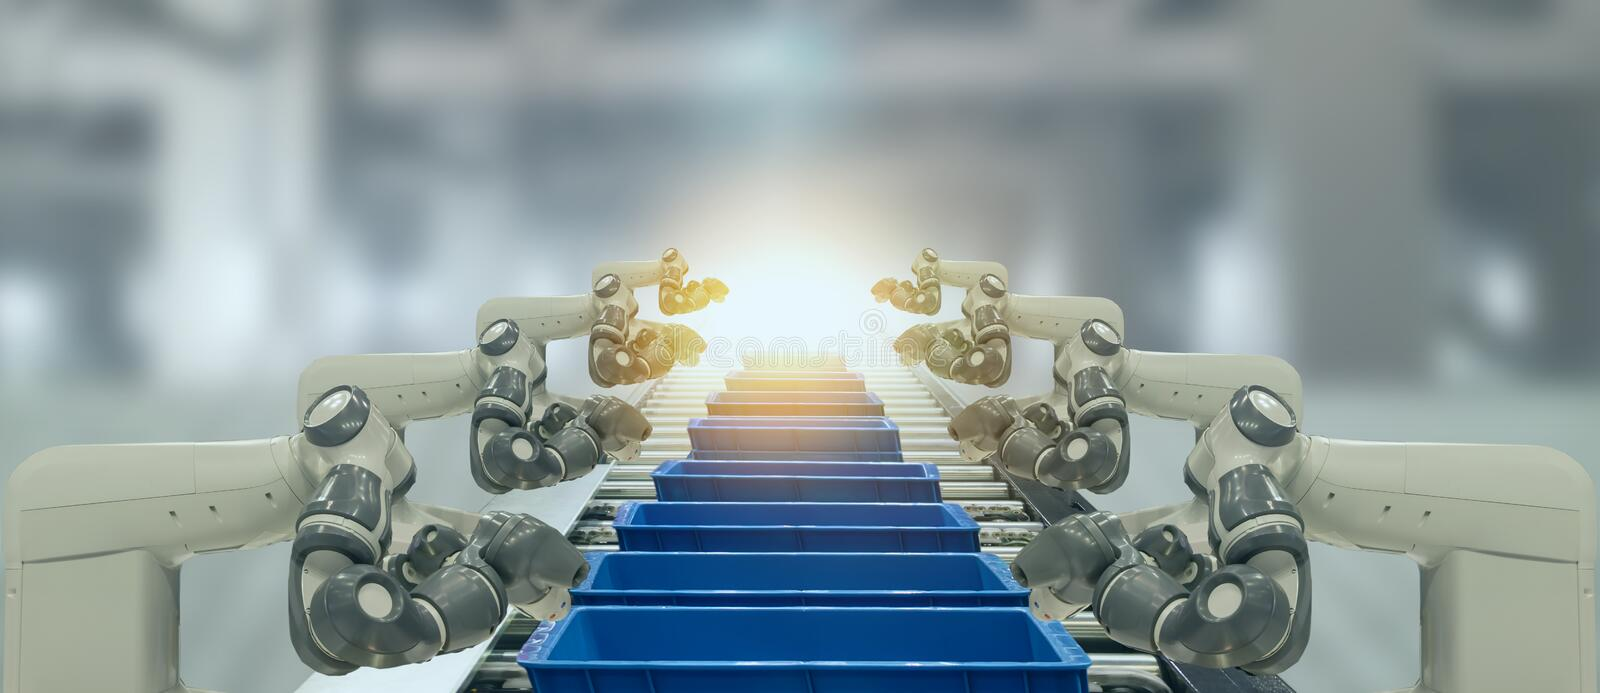 Iot industry 4.0 technology concept.Smart factory using trending automation robotic arms with part on conveyor belt in operation l stock photography